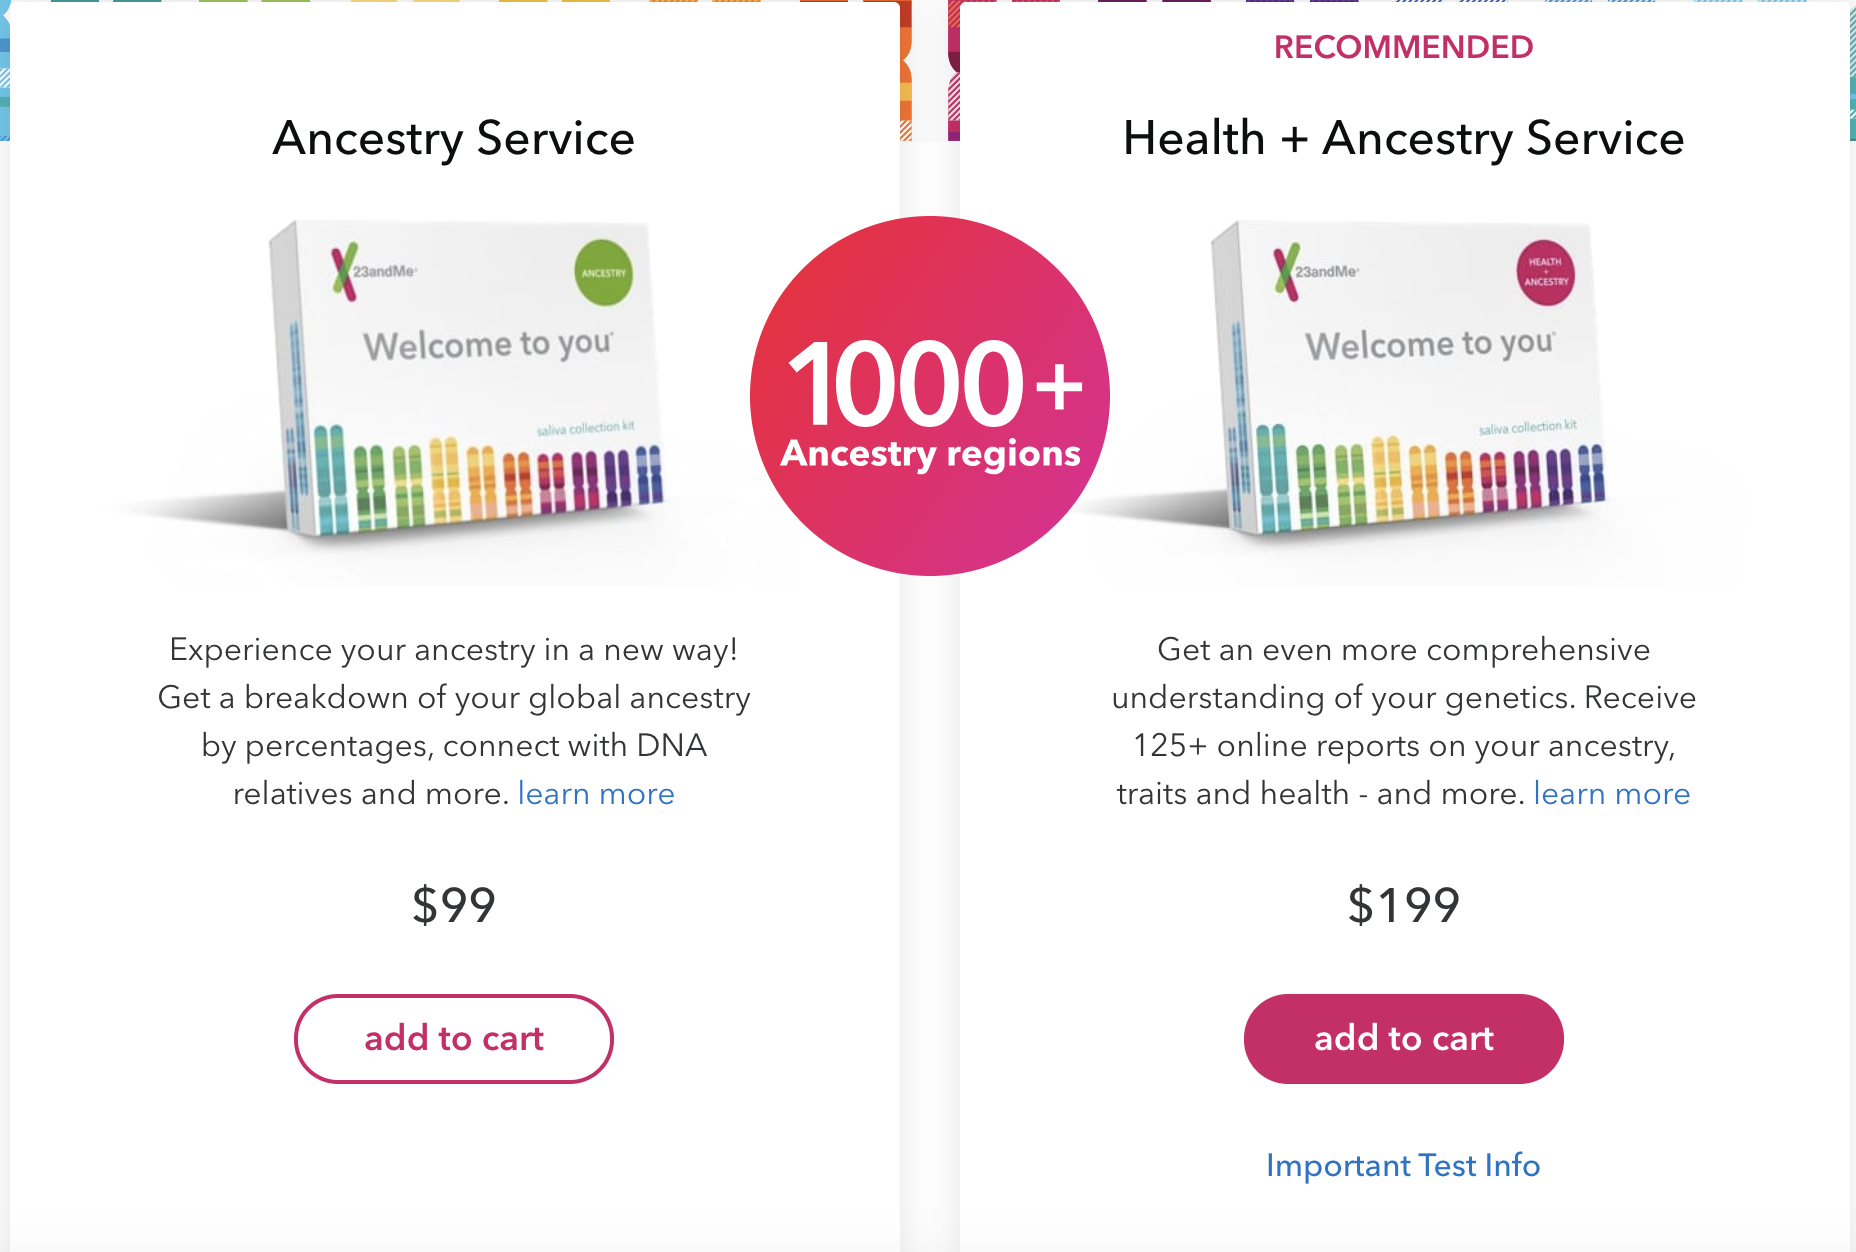 """Screenshot image taken from 23andMe's website www.23andme.com  Image description: 23andMe's two kits displayed next to each other """"Ancestry Service"""" and """"Health + Ancestry Service"""". Beneath the Ancestry service it reads """"experience your ancestry in a new way! Get a breakdown of your global ancestry by percentages, connect with DNA relatives and more."""" this kit sells for $99. Beneath the Health + Ancestry service it reads """"get an even more comprehensive understanding of your genetics. Receive 125+ online reports on your ancestry, traits and health—and more."""" this kit sells for $199."""